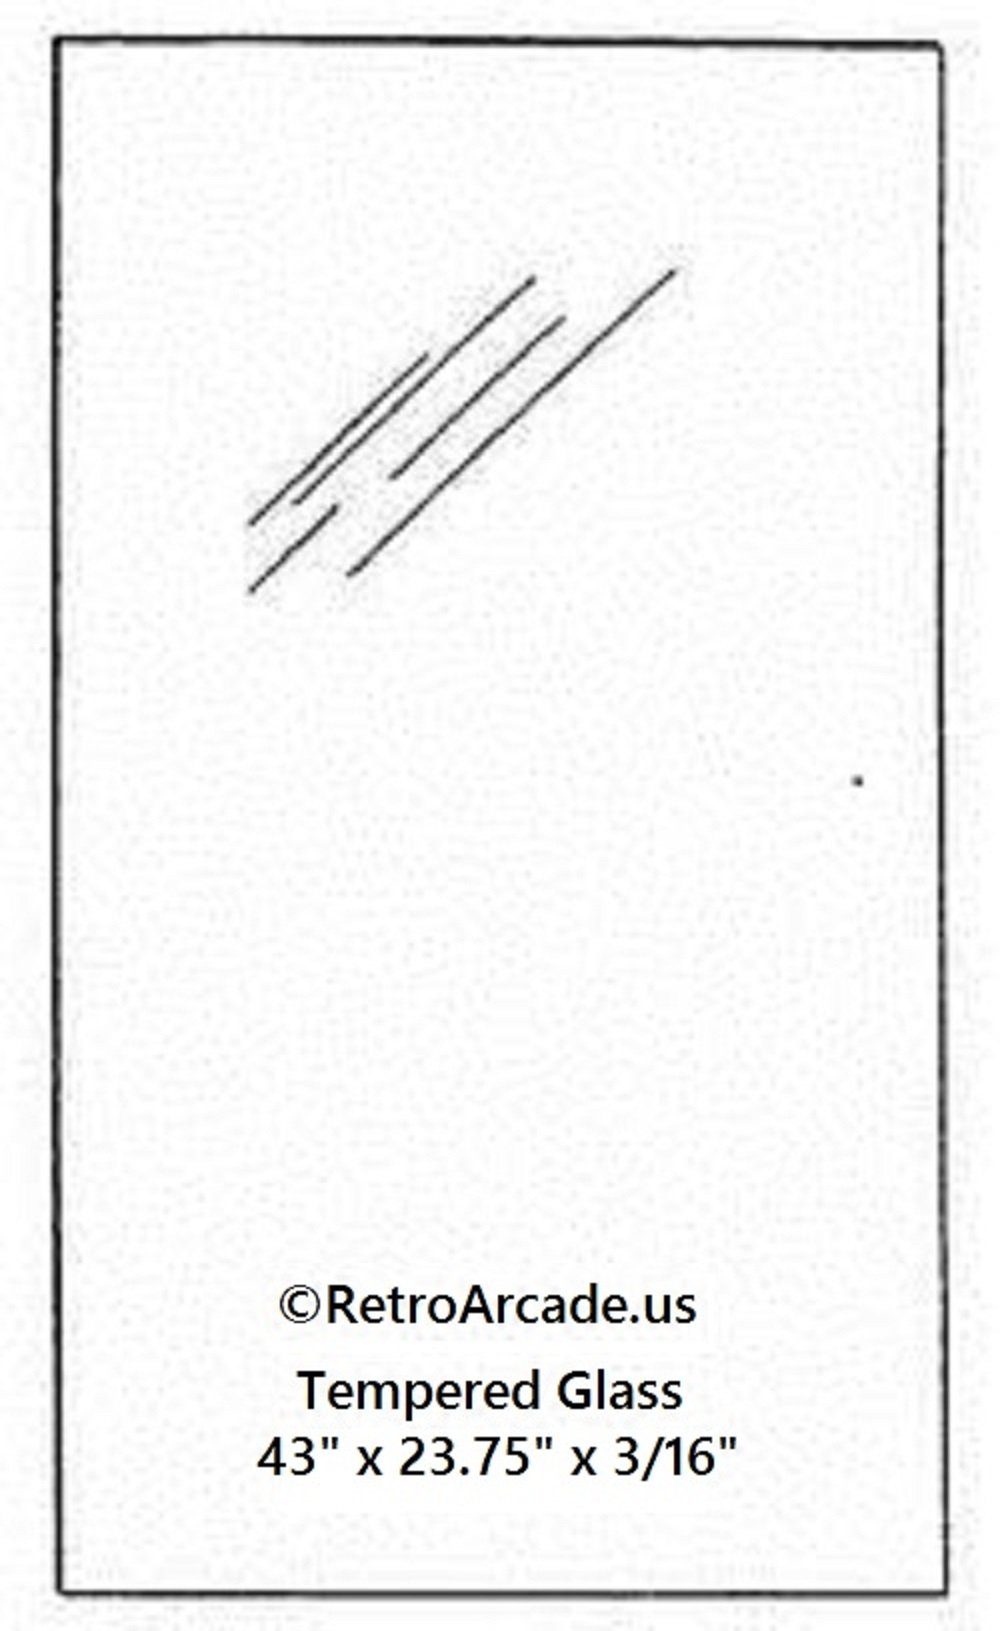 RetroArcade.us ra-pinball-glass-23 Replacement Pinball Glass widebody 23.75 x 43 x 0.185 inch, fits Williams, Stern, Bally, Midway, Game, Plan, Capcom by RetroArcade.us